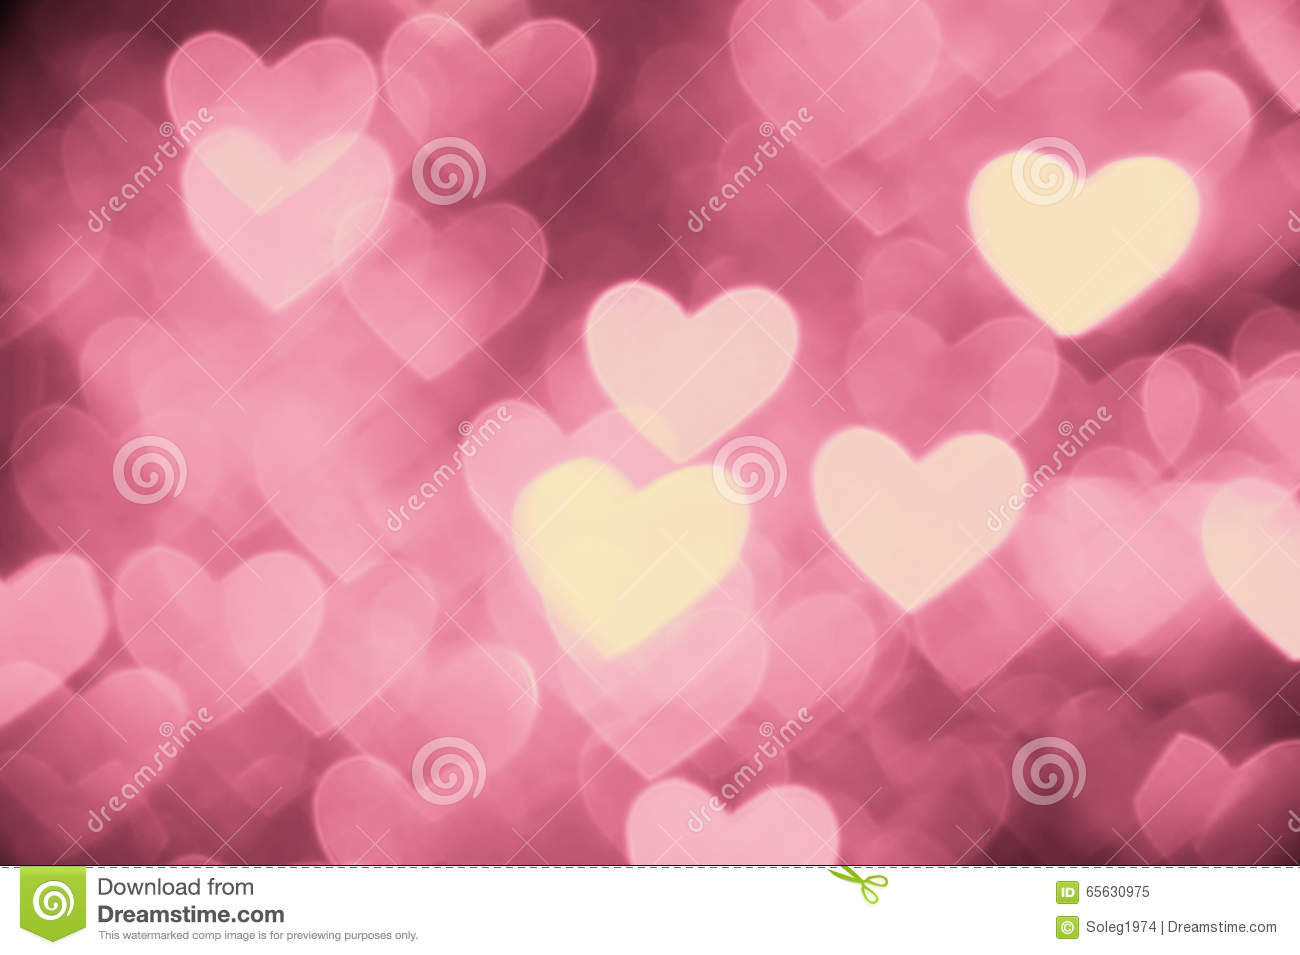 Light Pink Color Background Images Galleries With A Bite